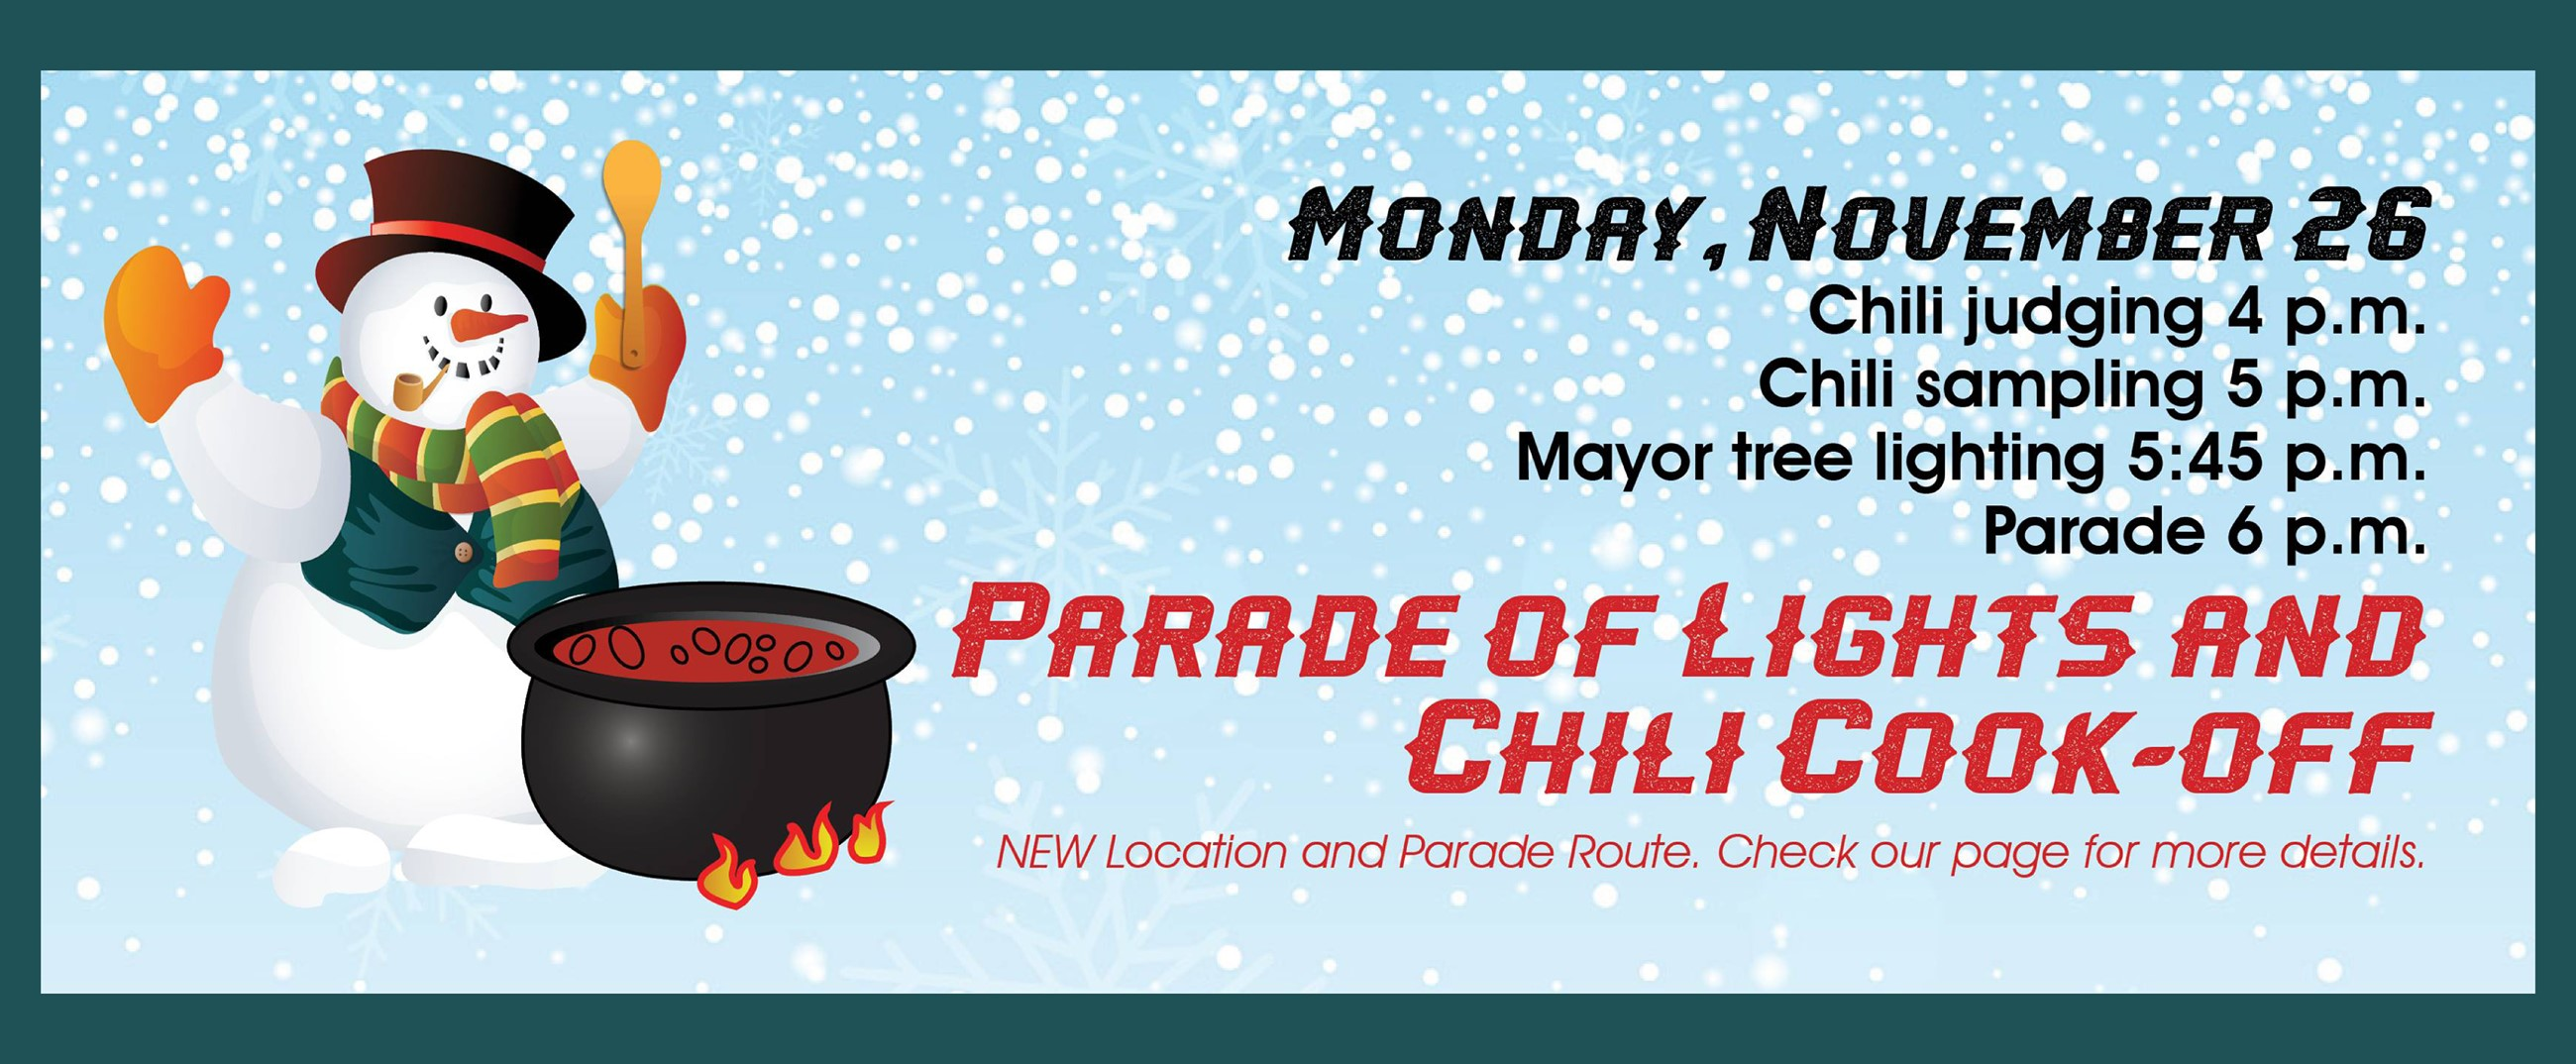 Victory Electric Annual Parade of Lights & Chili Cook-off